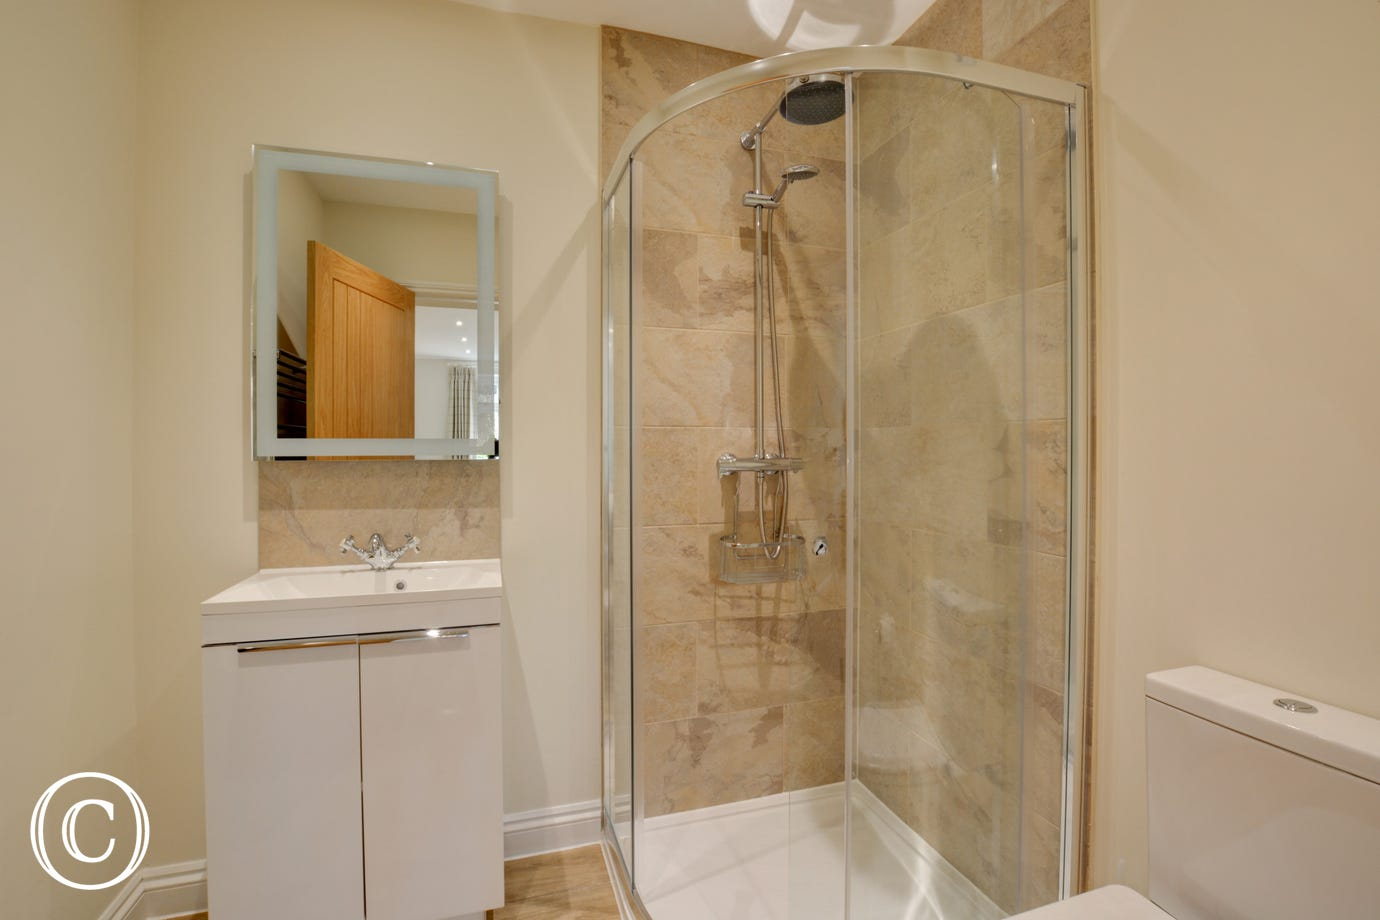 Walk-in shower and vanity unit